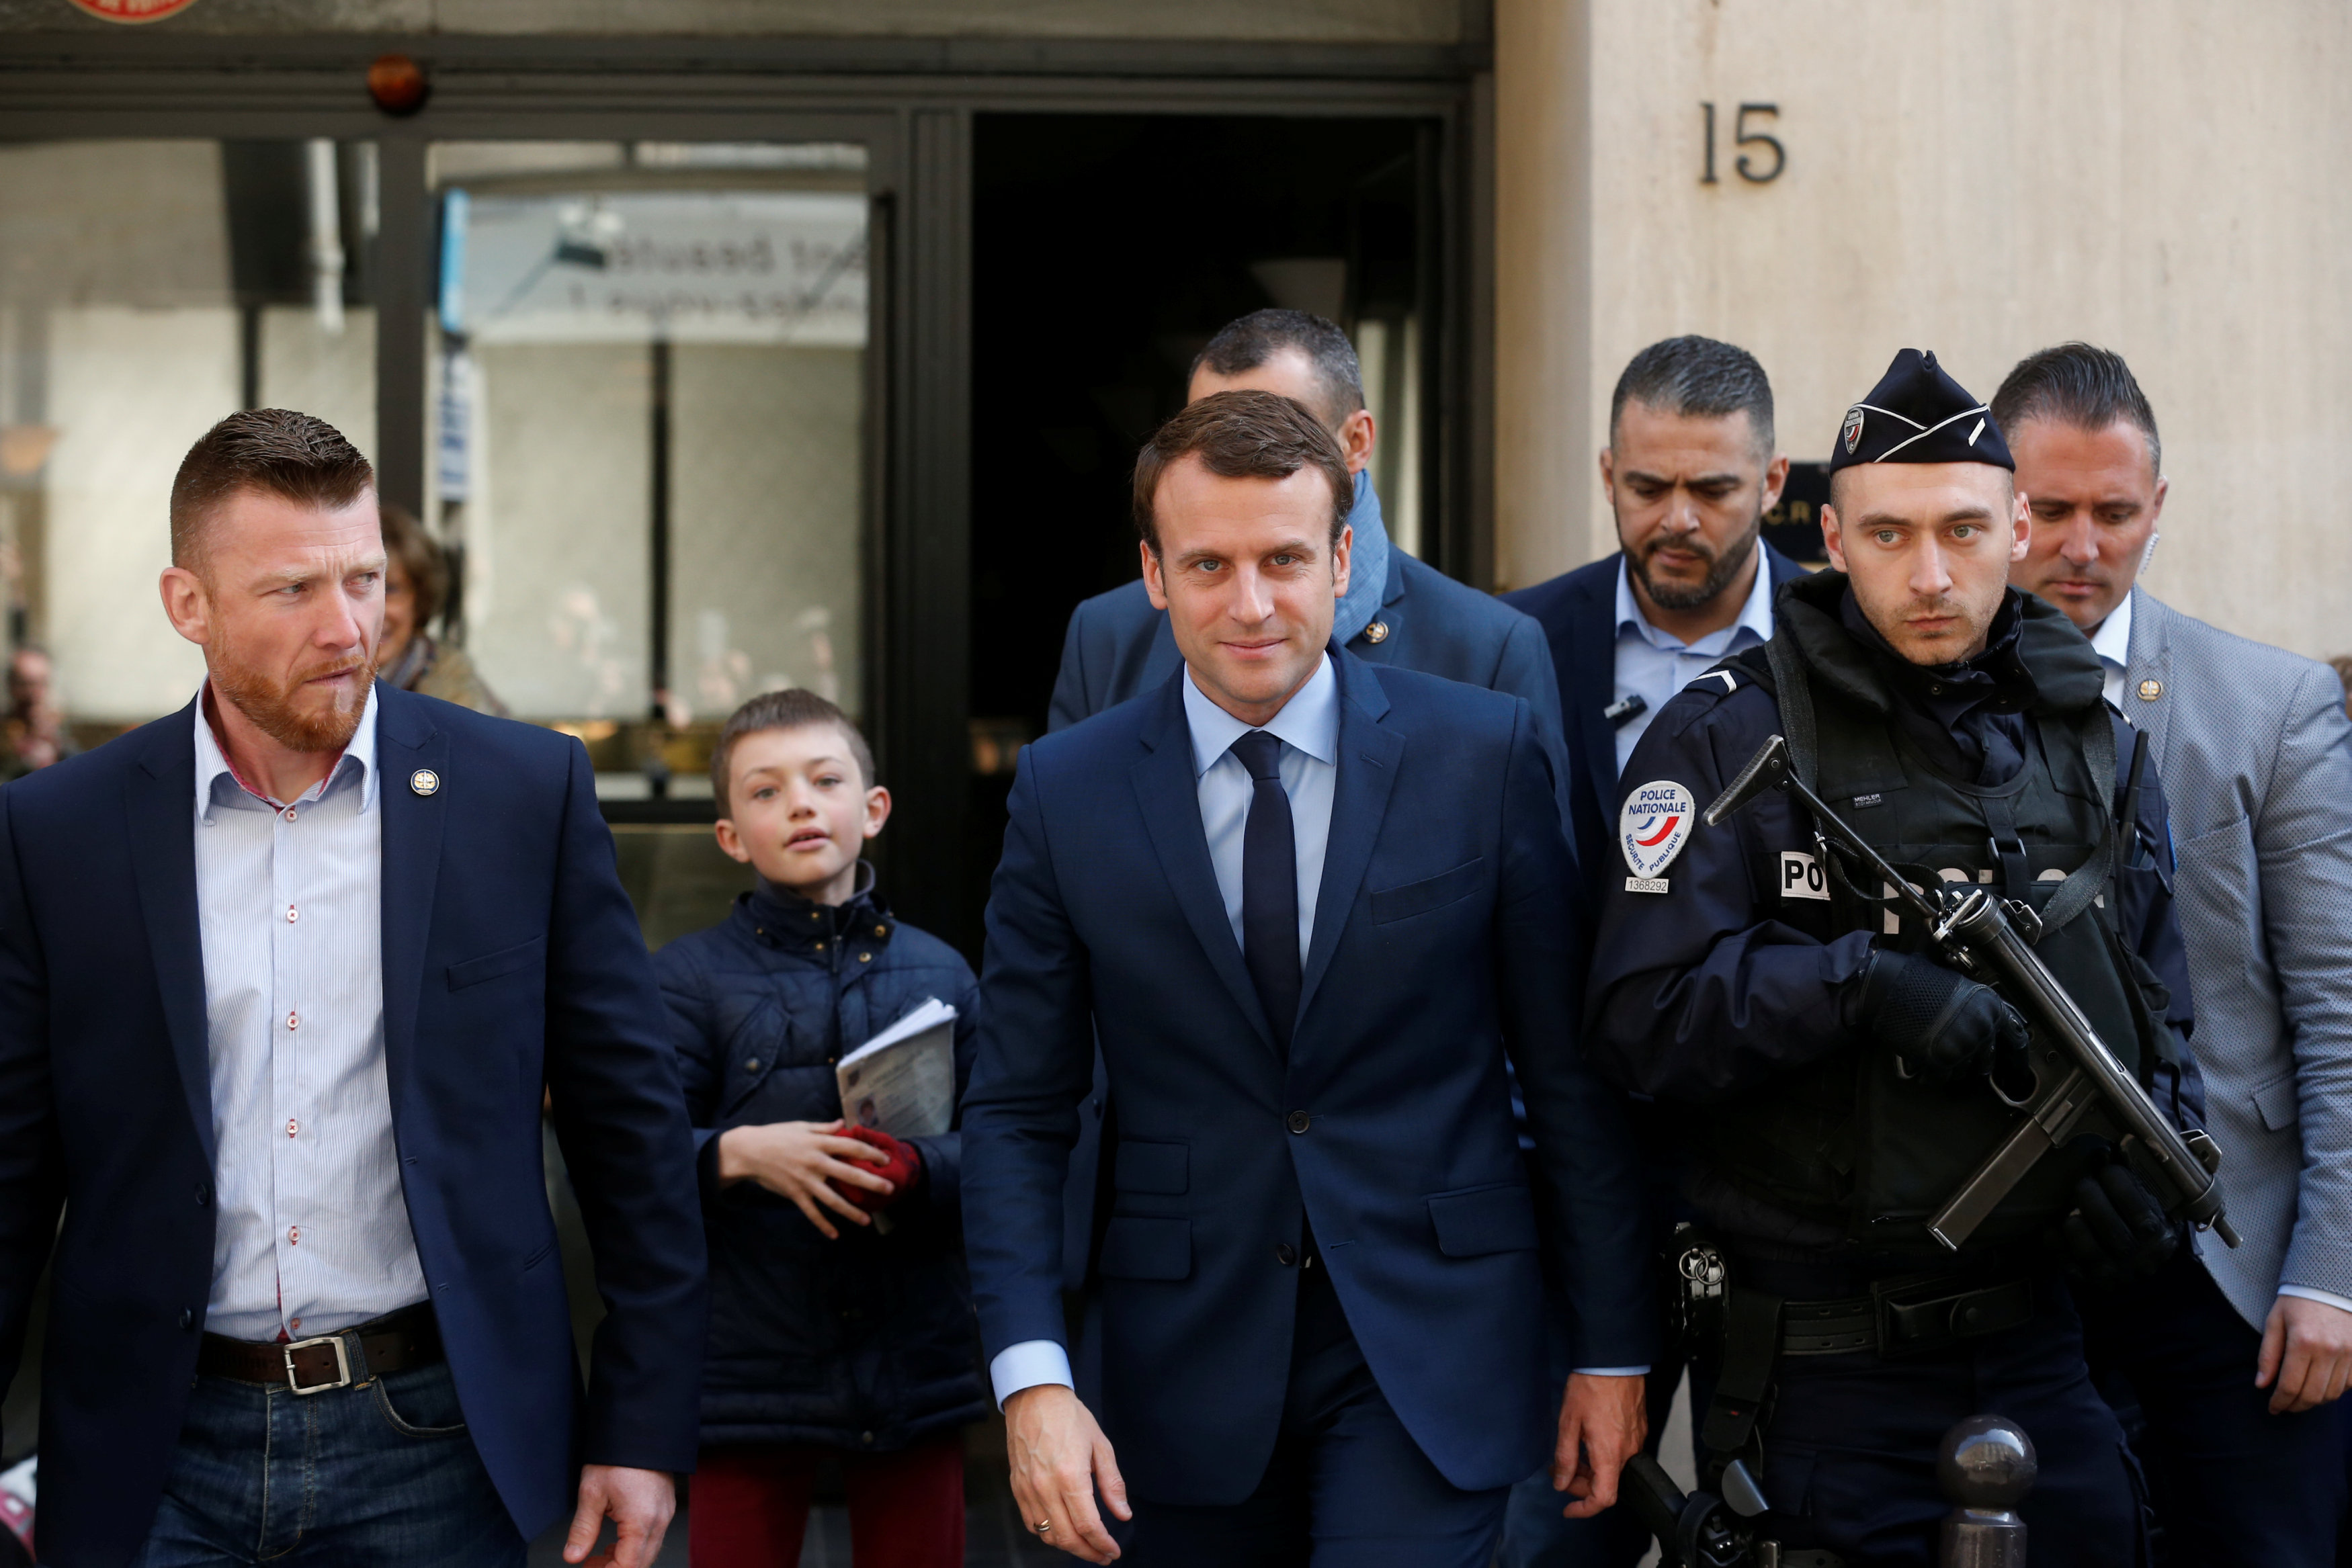 France elections 2017 live - Here S A Snap Of Macron Leaving His Home In Paris A Bit Earlier Surrounded By Security